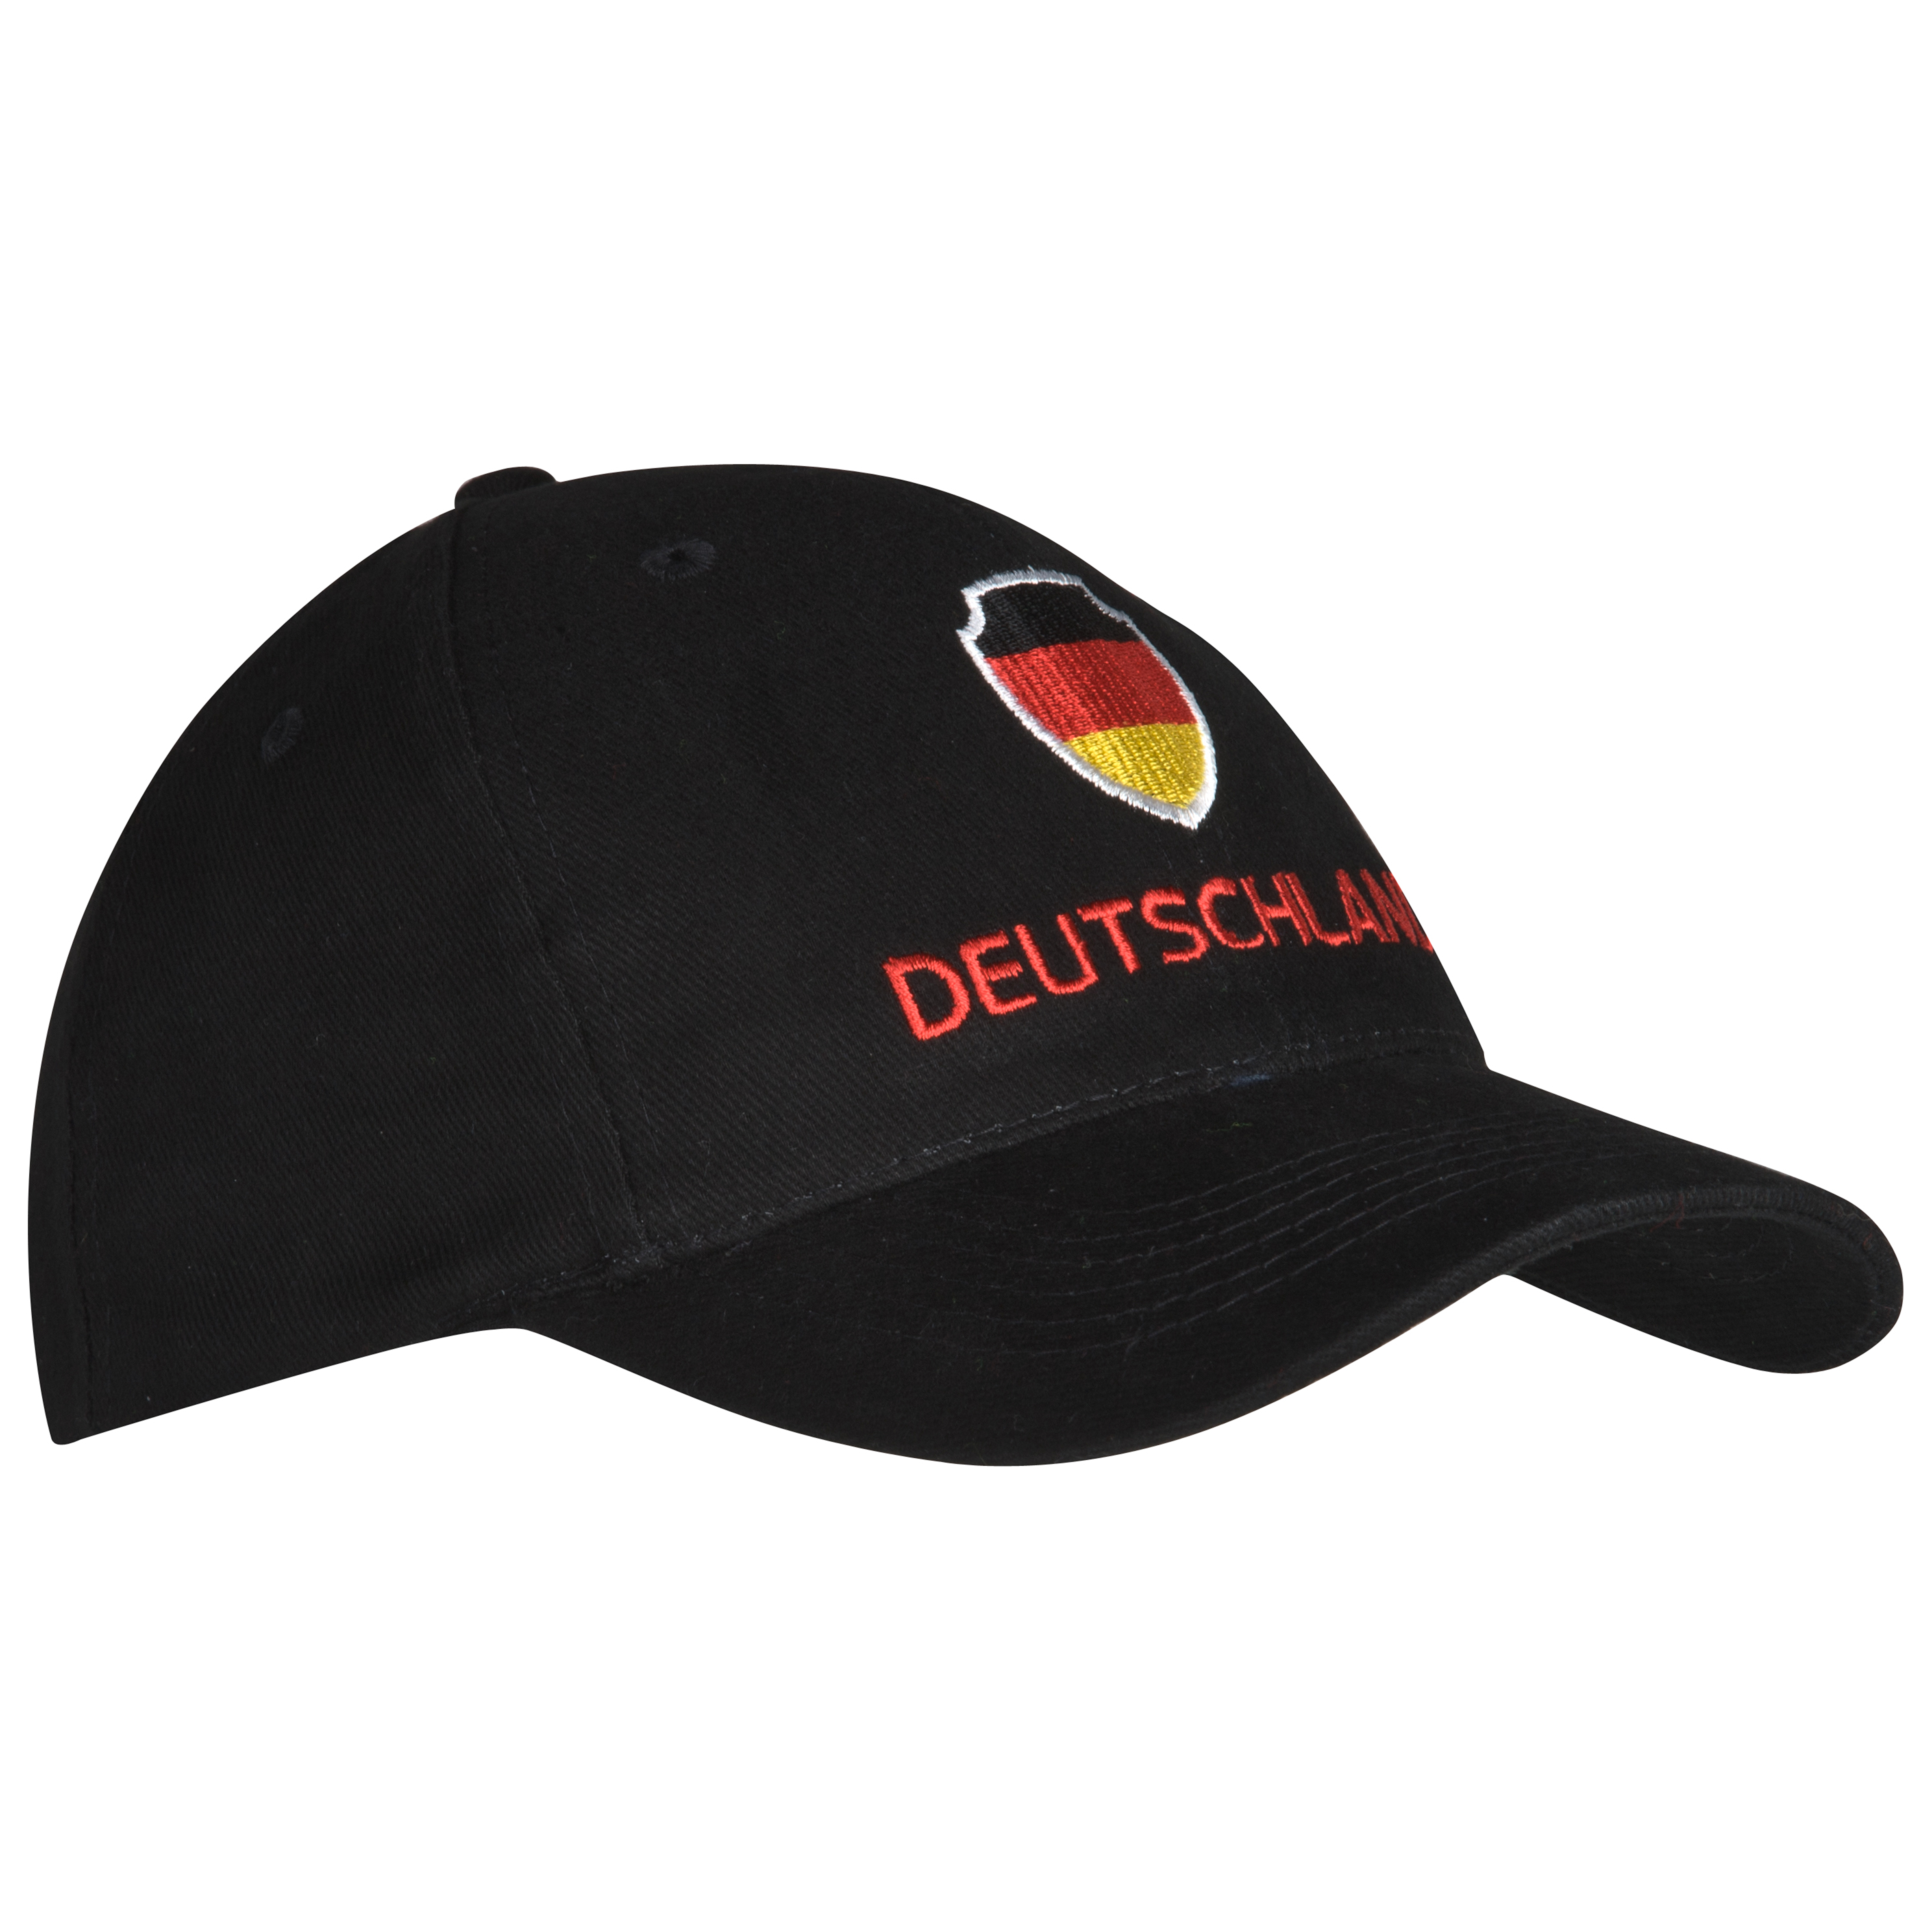 Euro 2012 Germany Cap - Black/Gold/Red/White